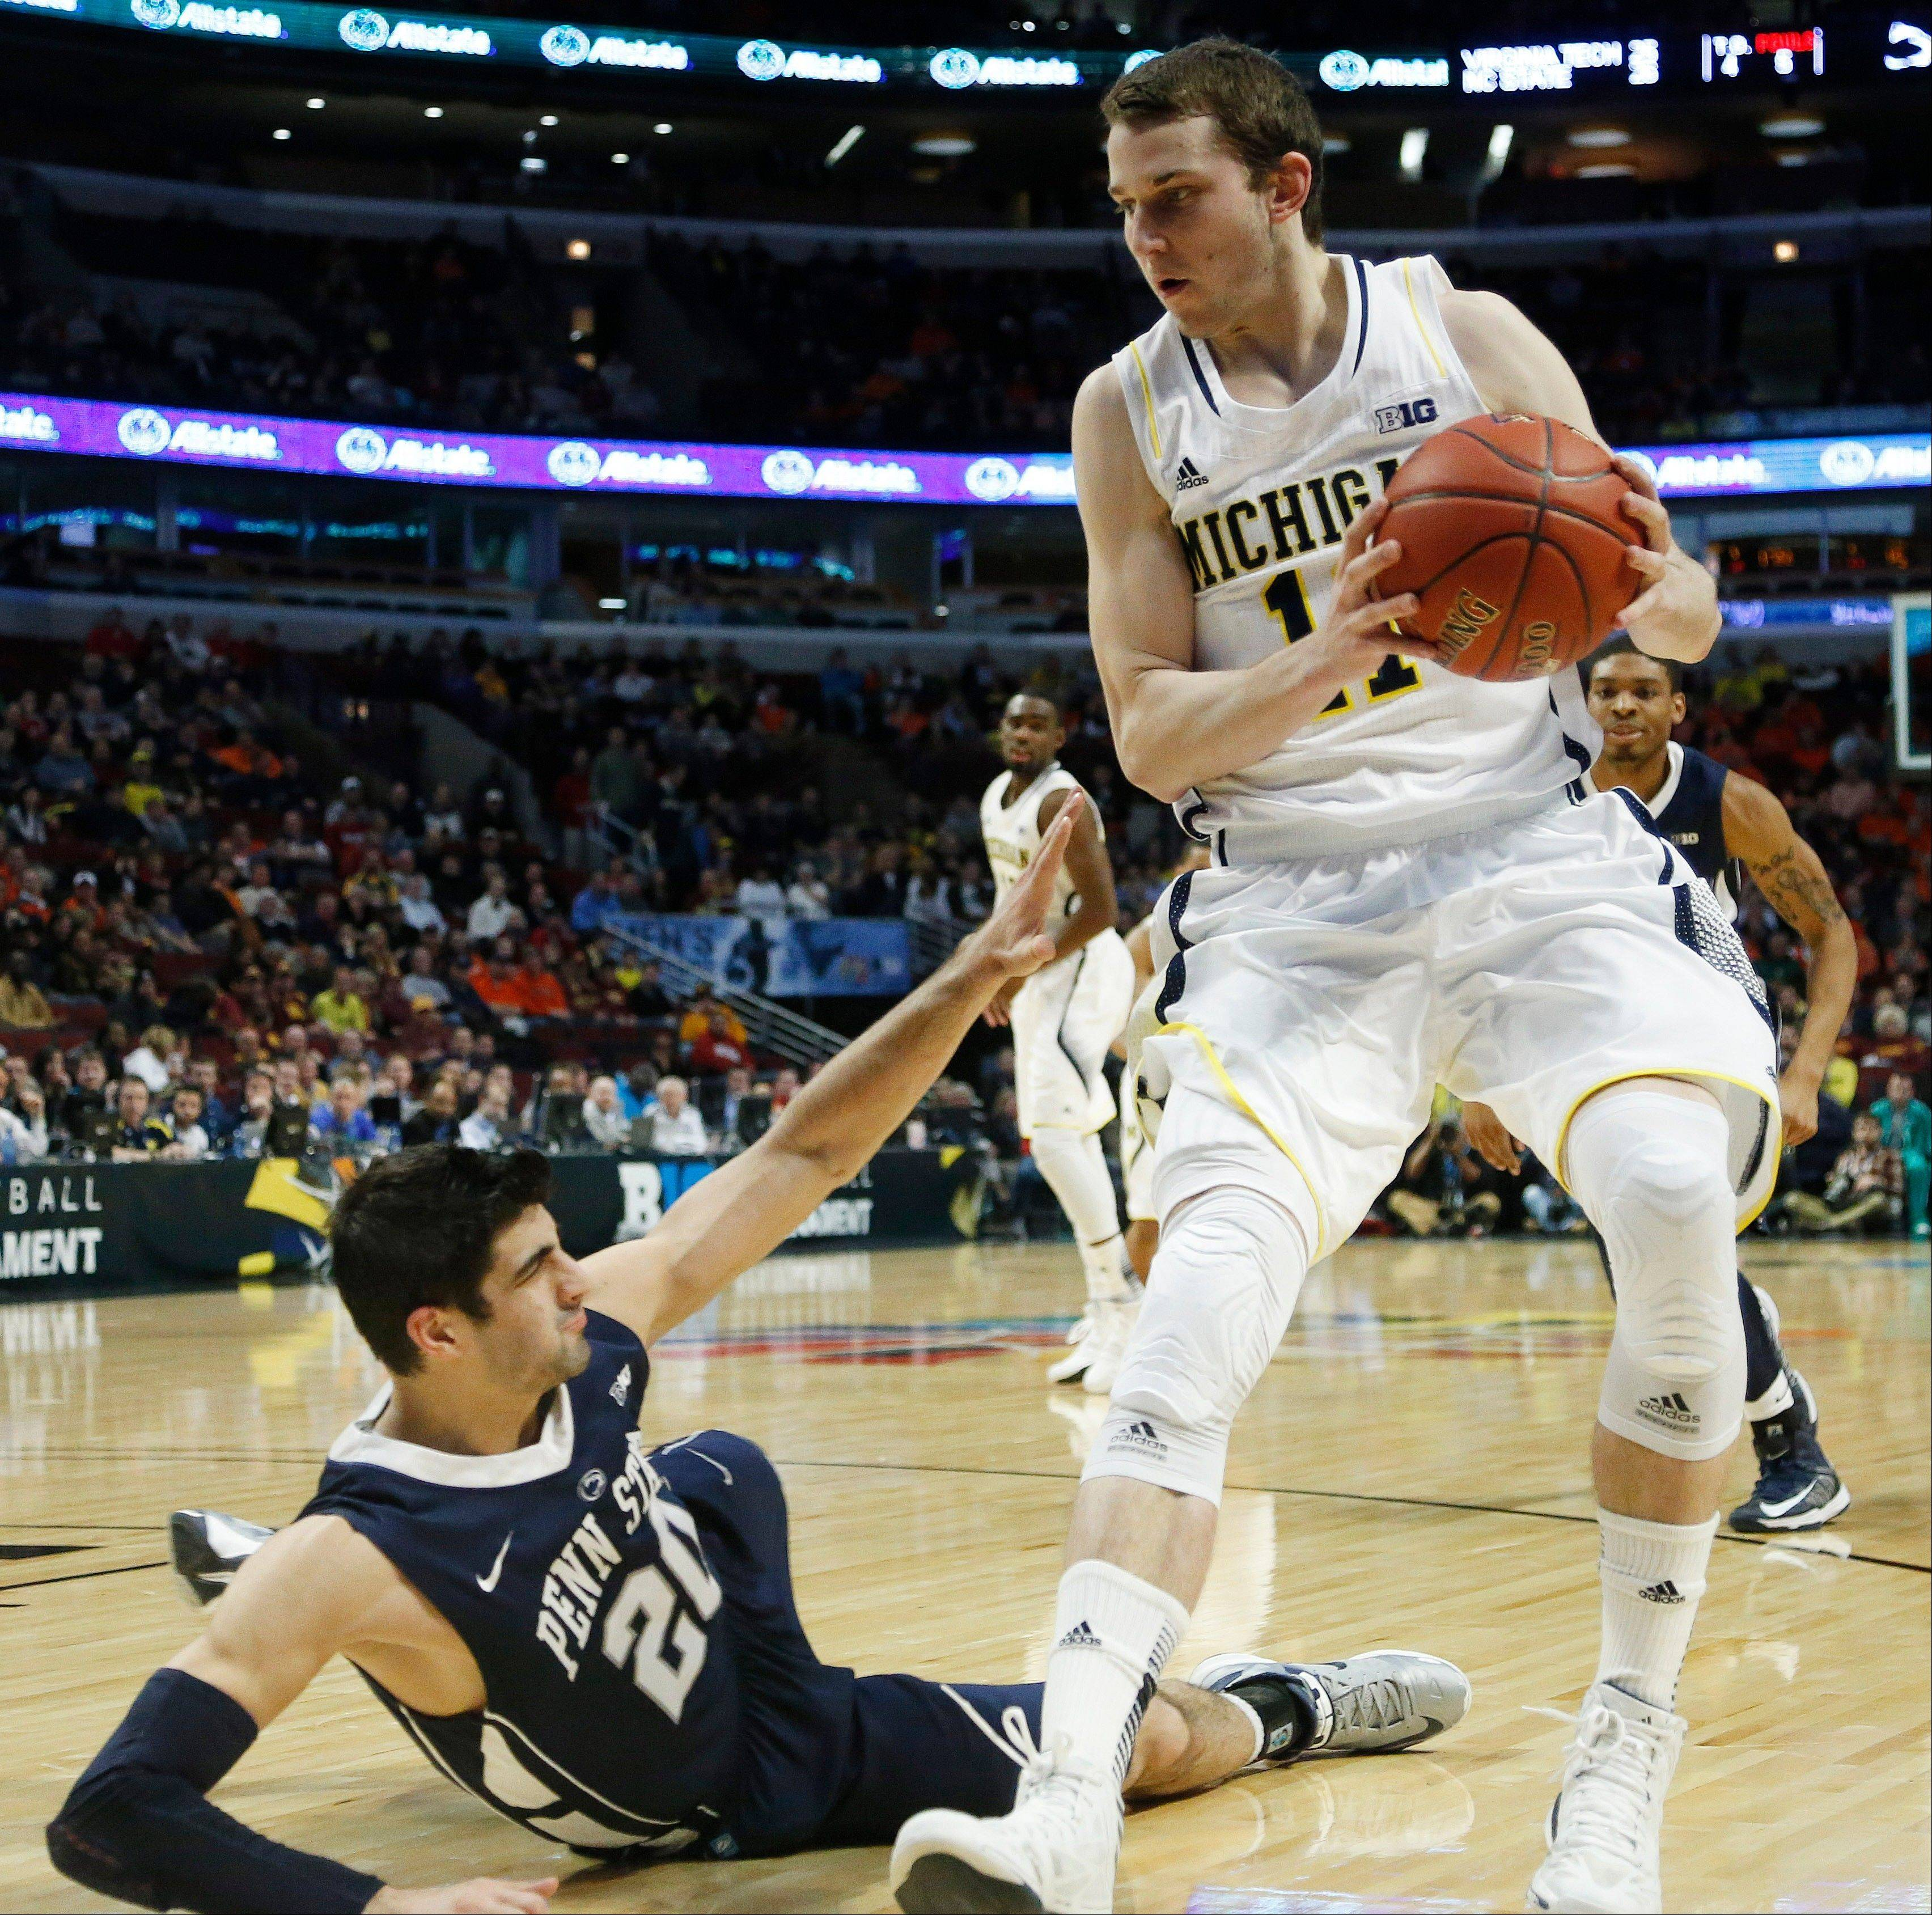 Michigan beats Penn St 83-66 at Big Ten tourney